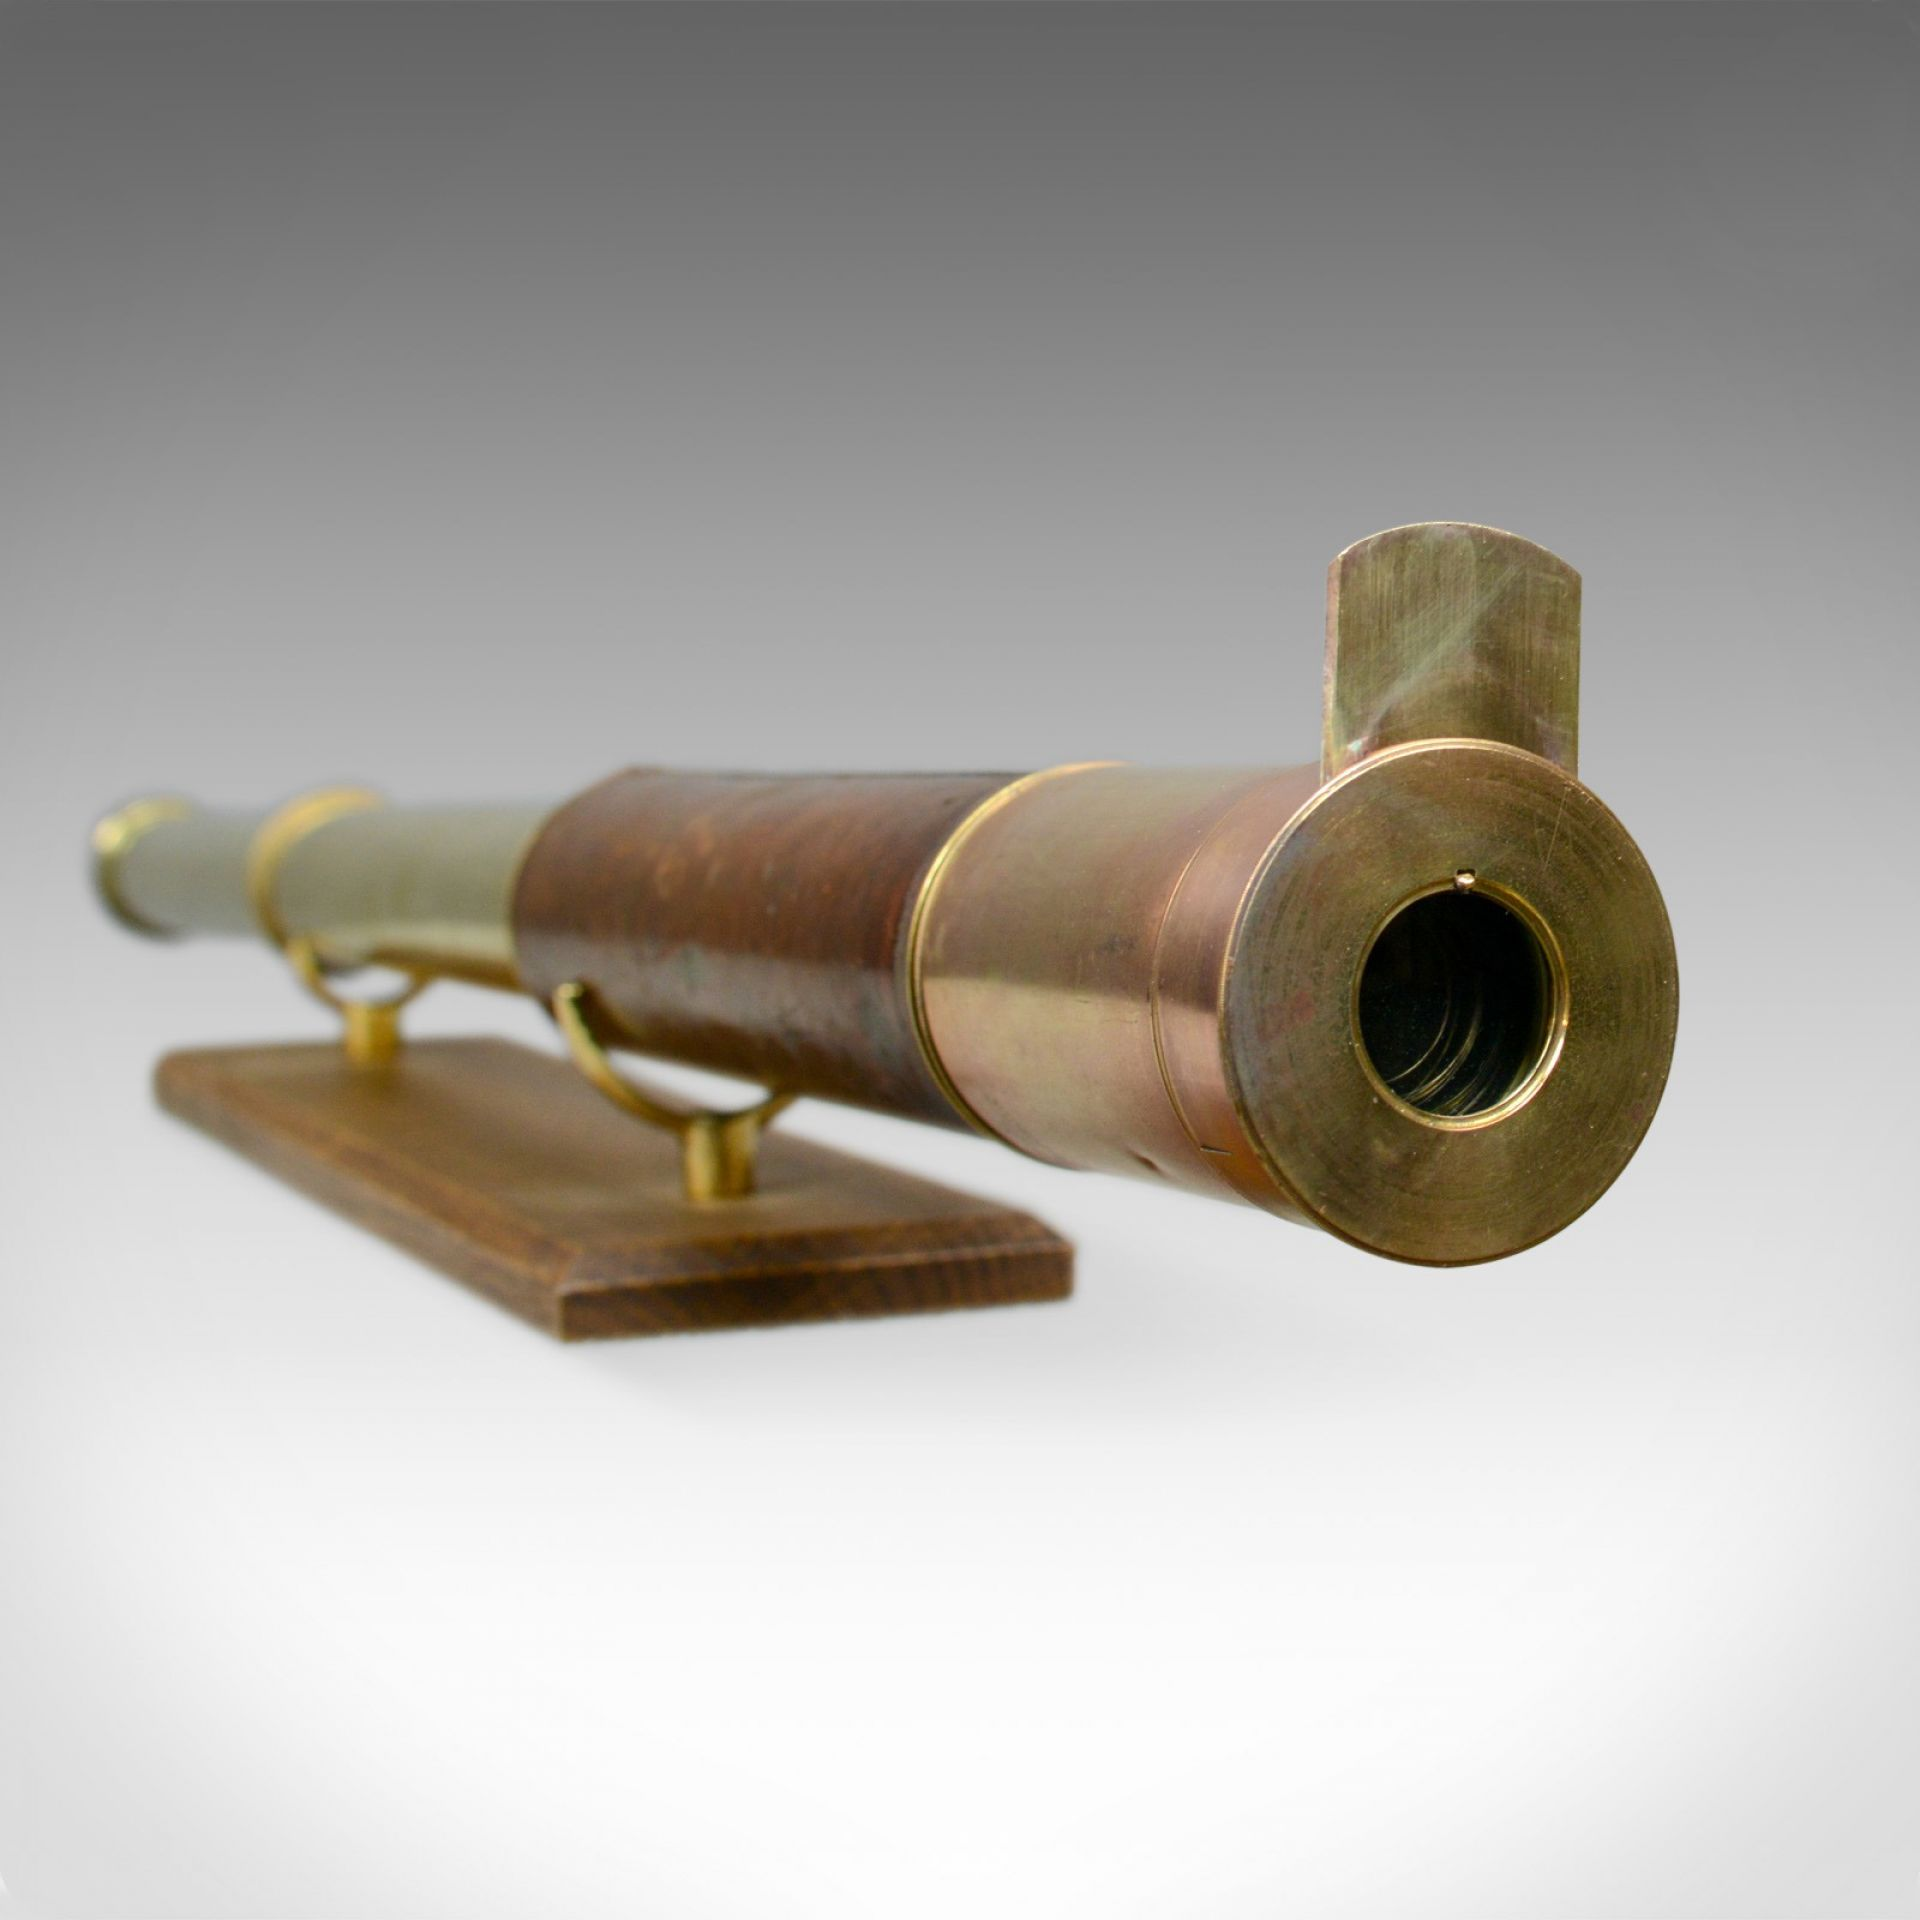 Antique Telescope, Two Draw, Refractor, Stampa and Son, London, Circa 1810